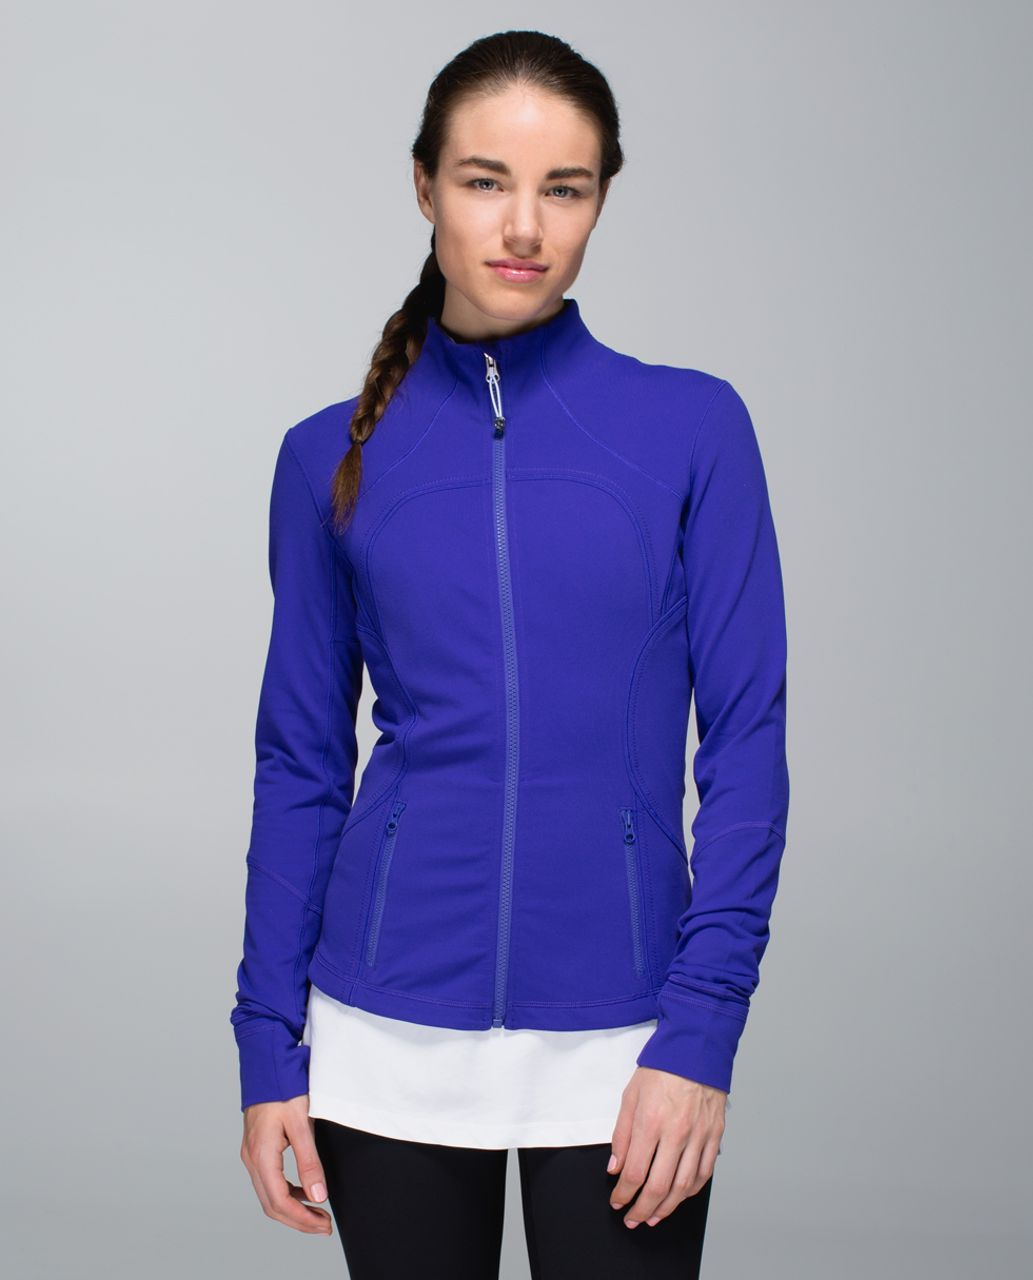 Lululemon Forme Jacket *Cuffins - Bruised Berry / Wee Are From Space Brusied Berry